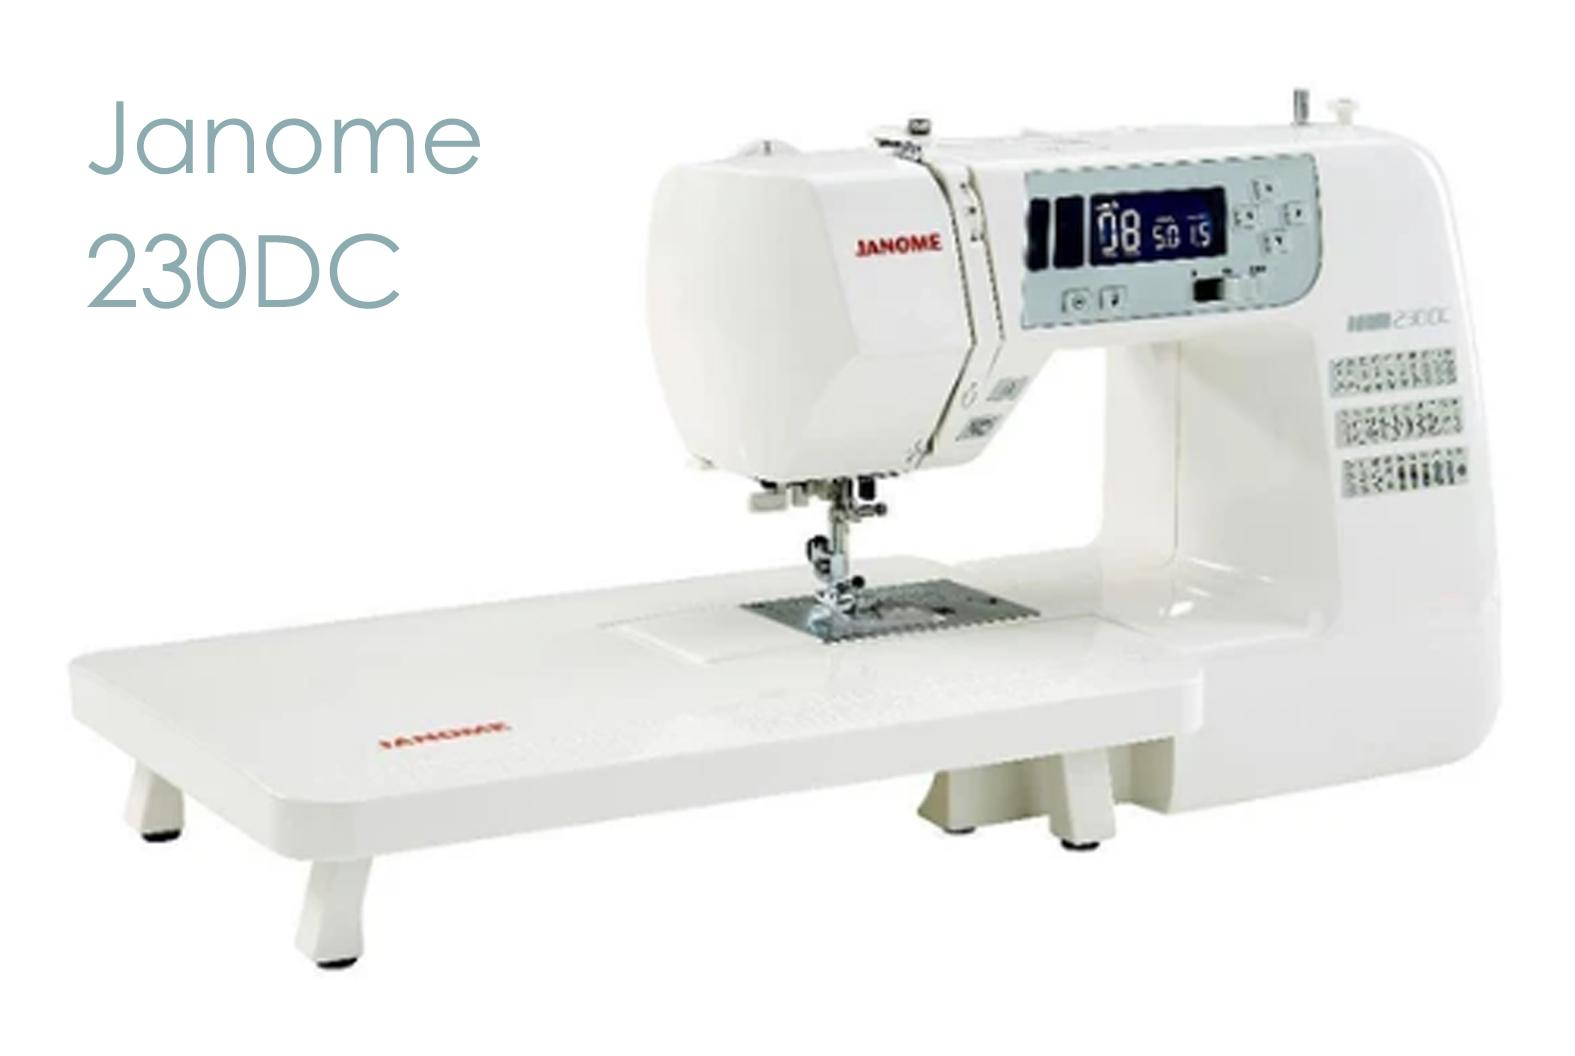 Janome 230DC a good sewing machine for free motion embroidery